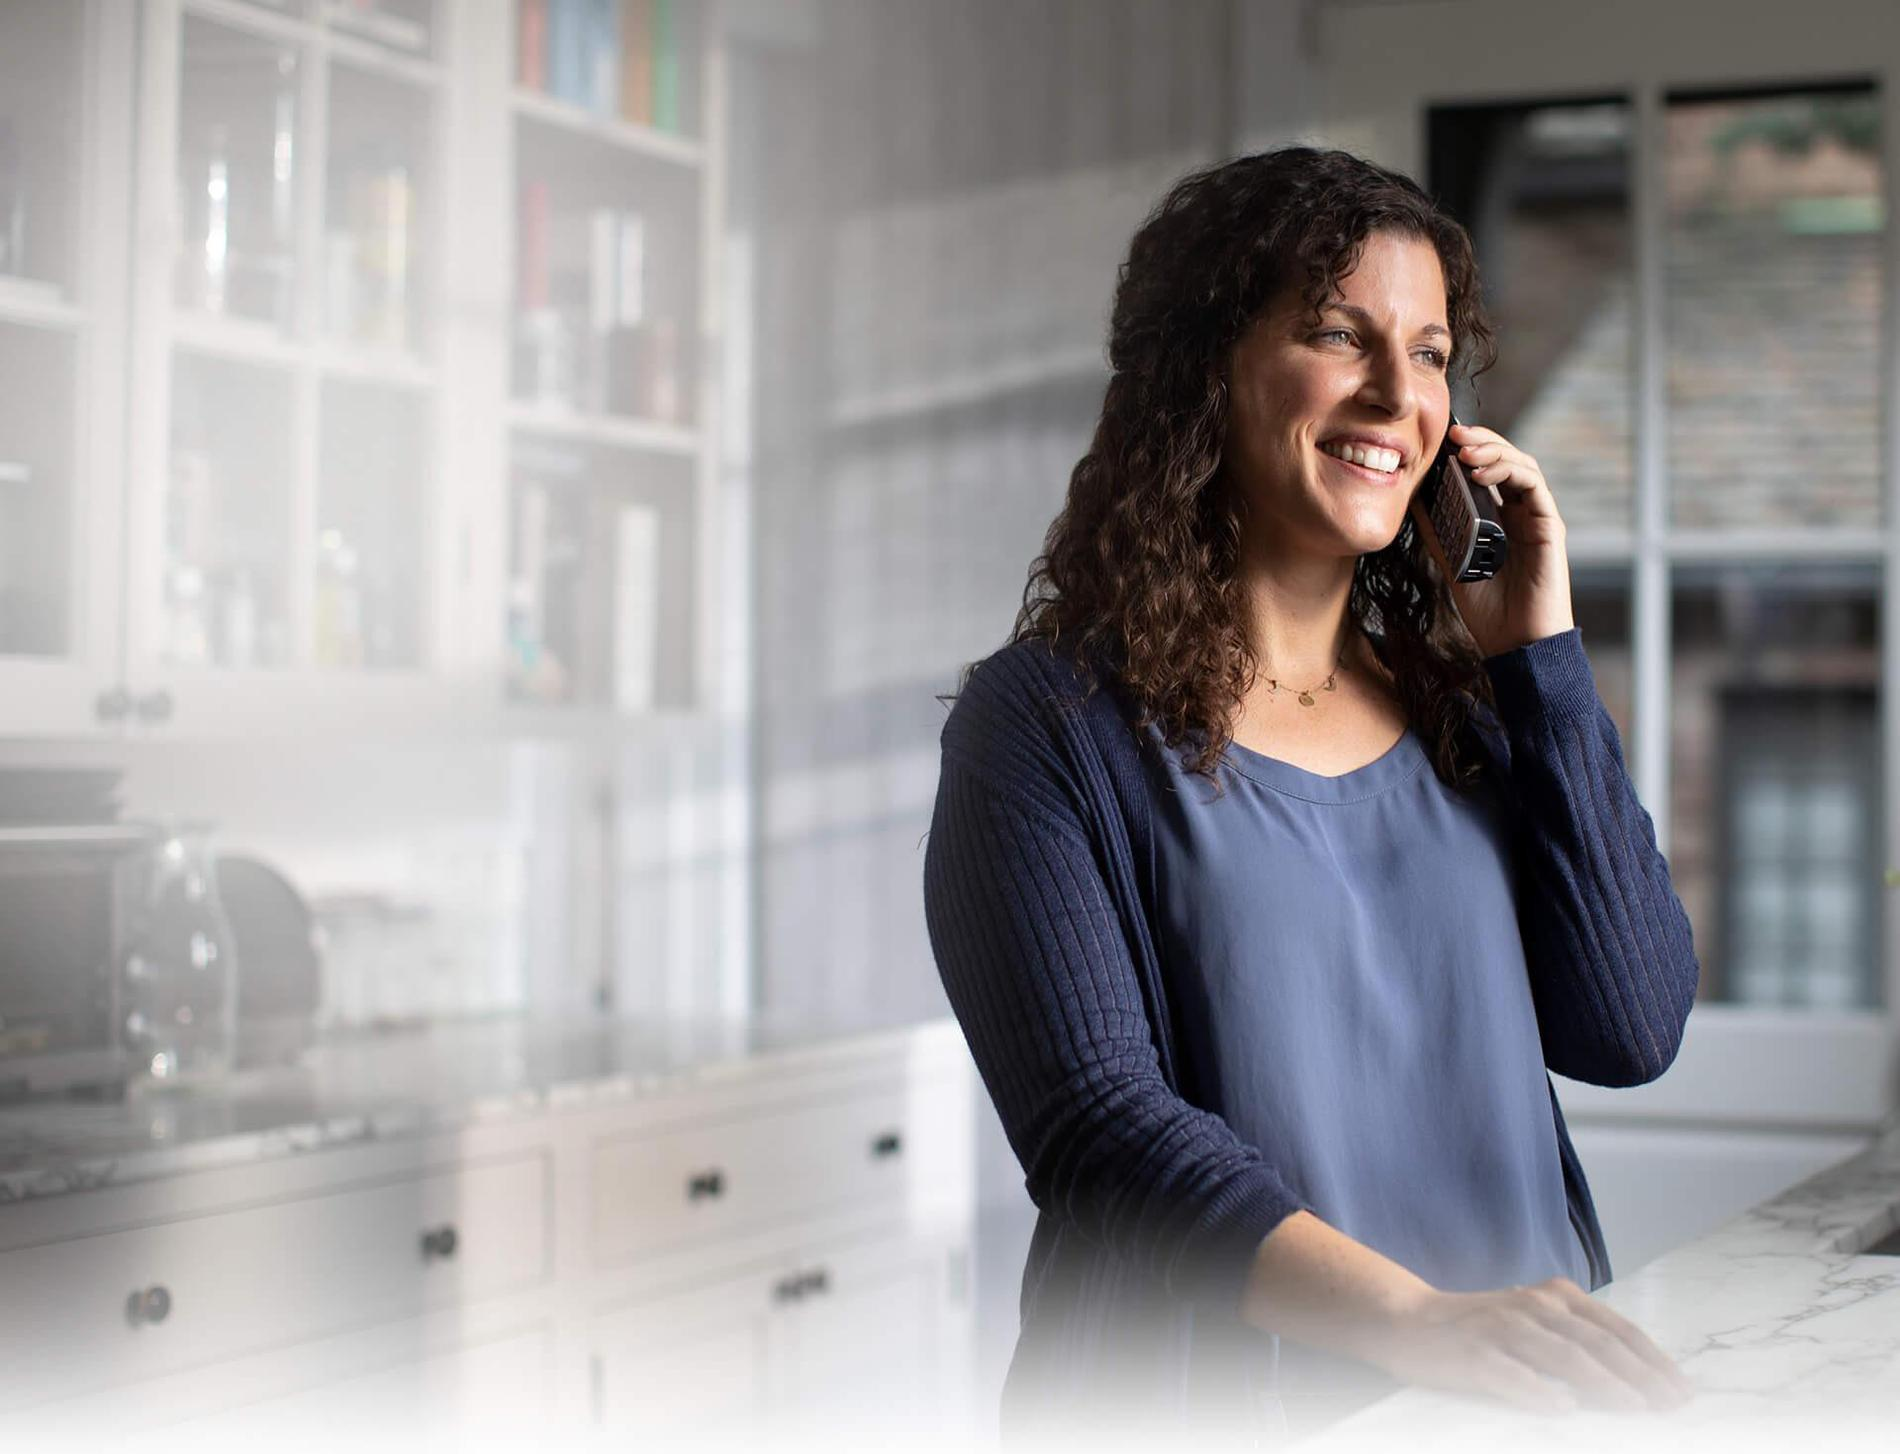 Photo of woman standing in a kitchen talking on a cordless phone using an Optimum Voice connection